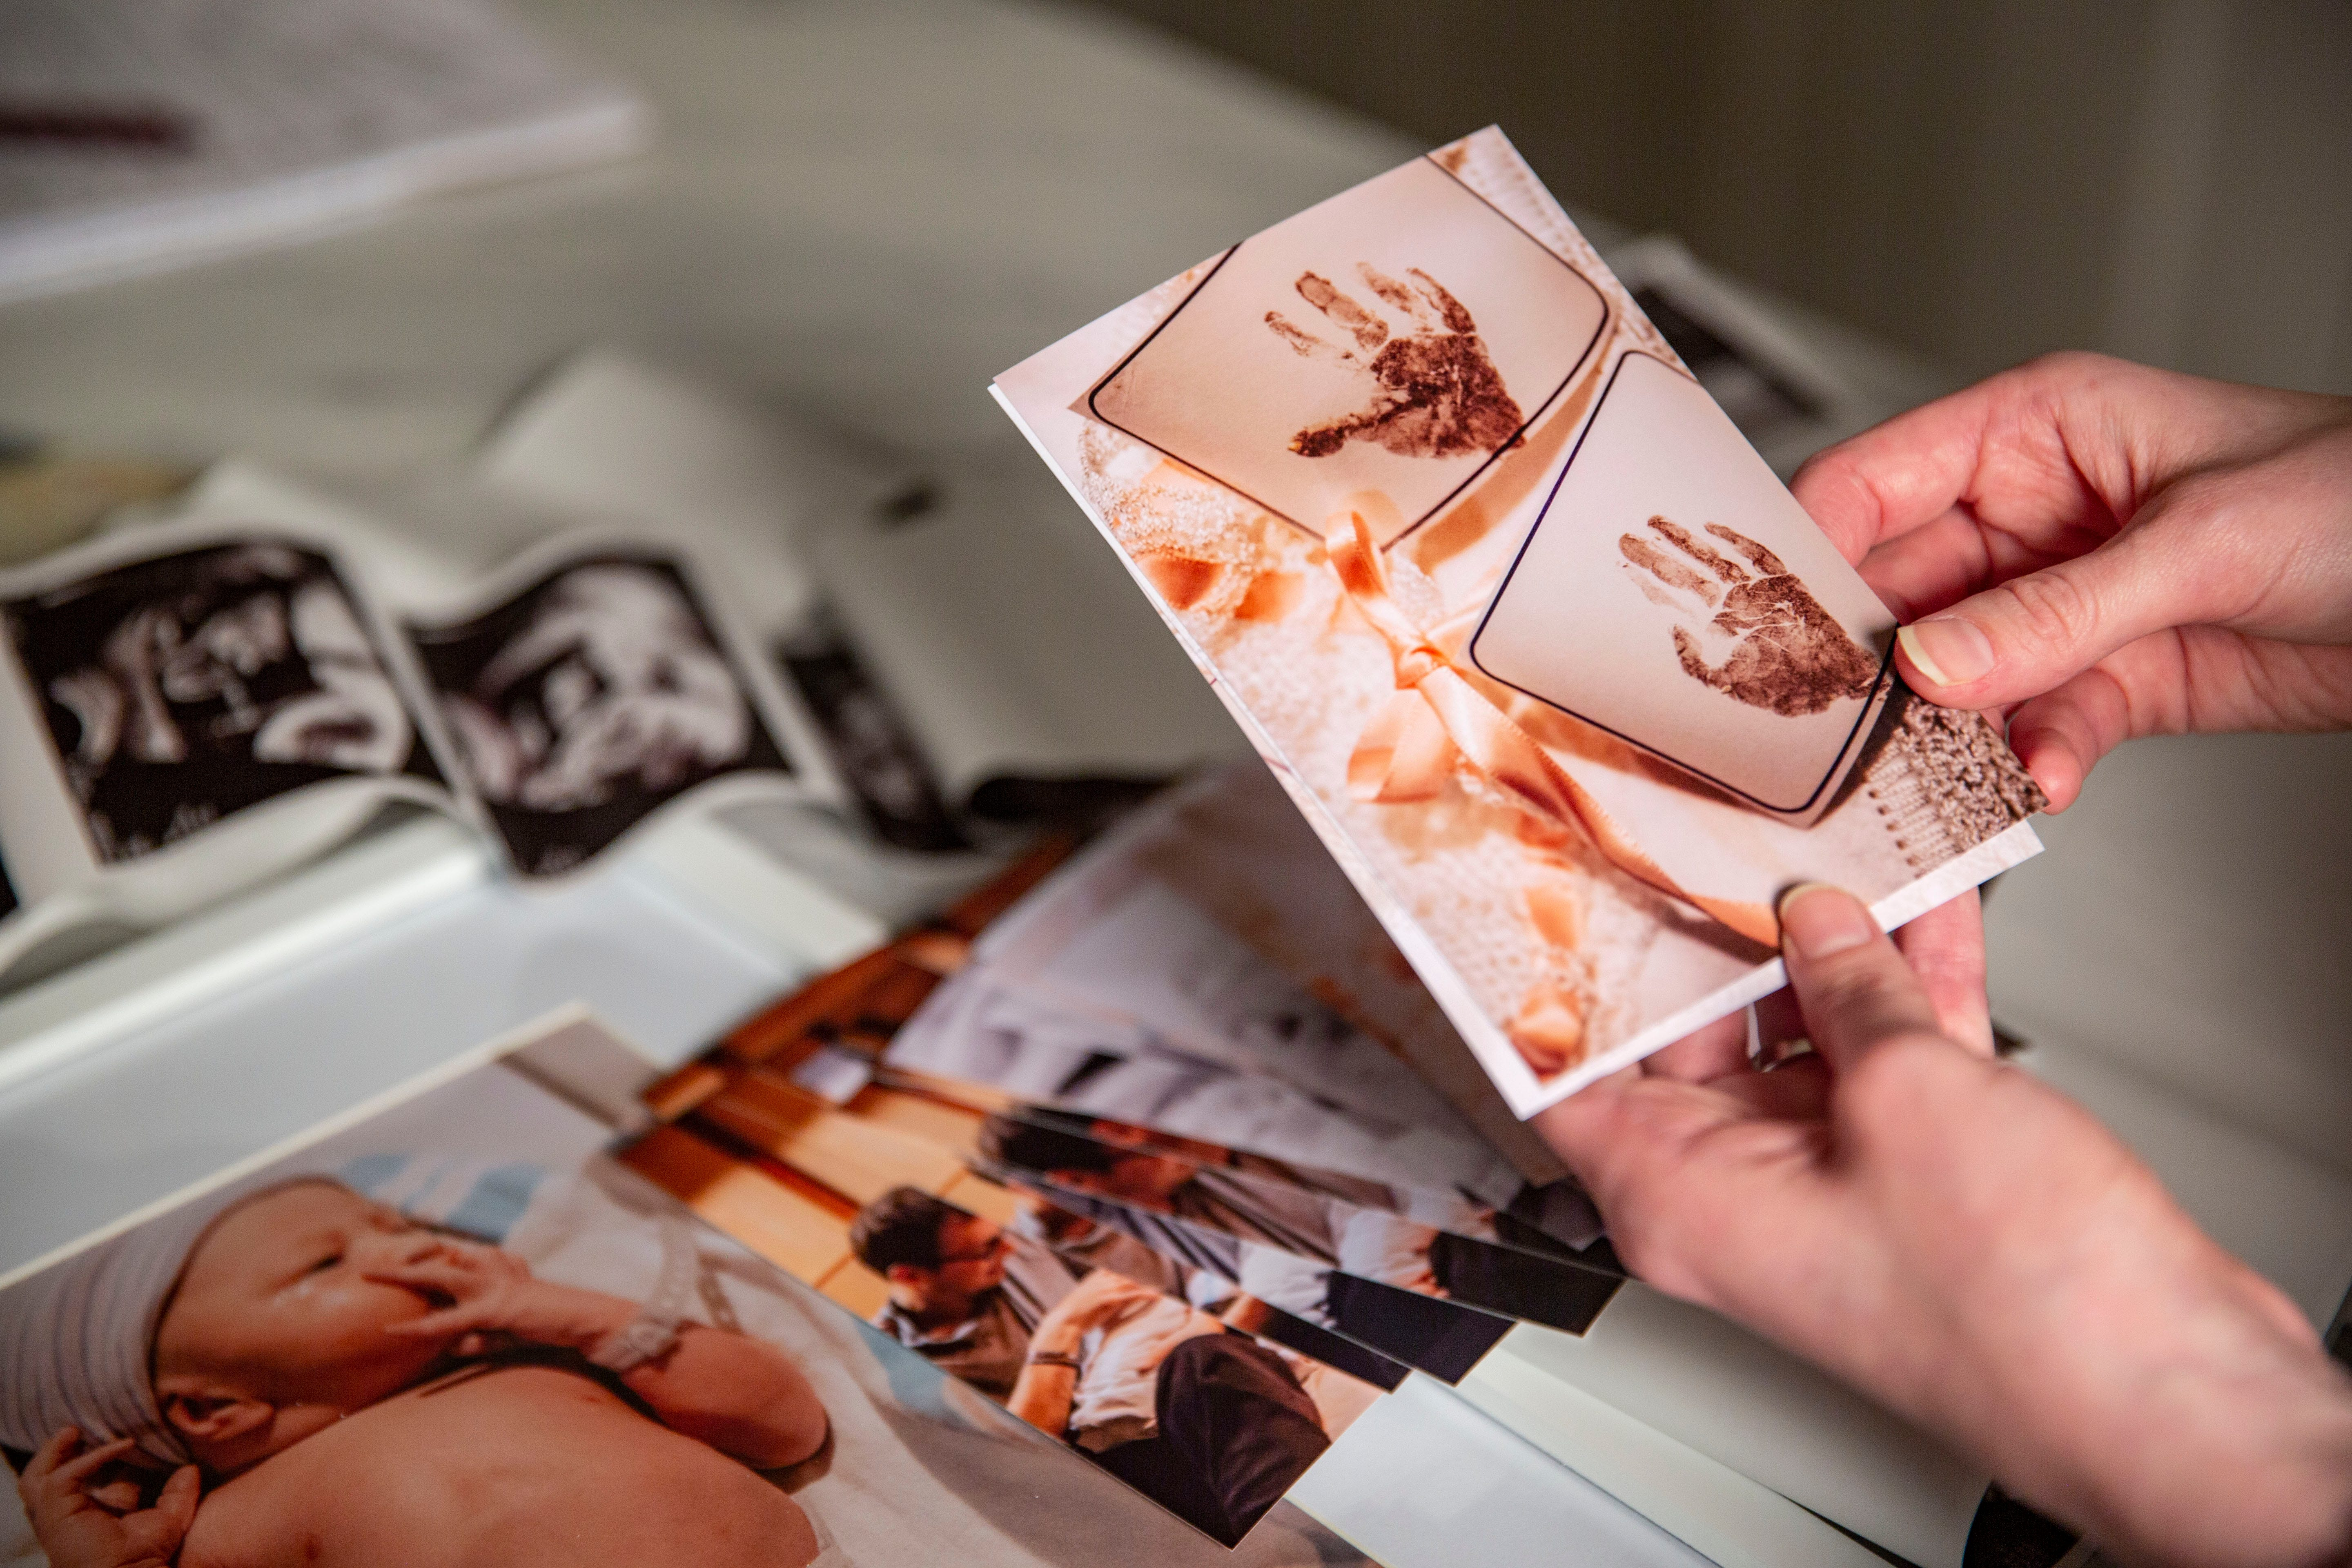 McKenzie Harreld looks at photos taken by nurse Cherish Shuka of her daughter Blakely's handprints after she gave birth to her and her son, Calvin, at Mary Greeley Medical Center in Ames. Blakely was stillborn, and Shuka volunteered to photograph the family together so that the Harrelds would have something to help remember her.